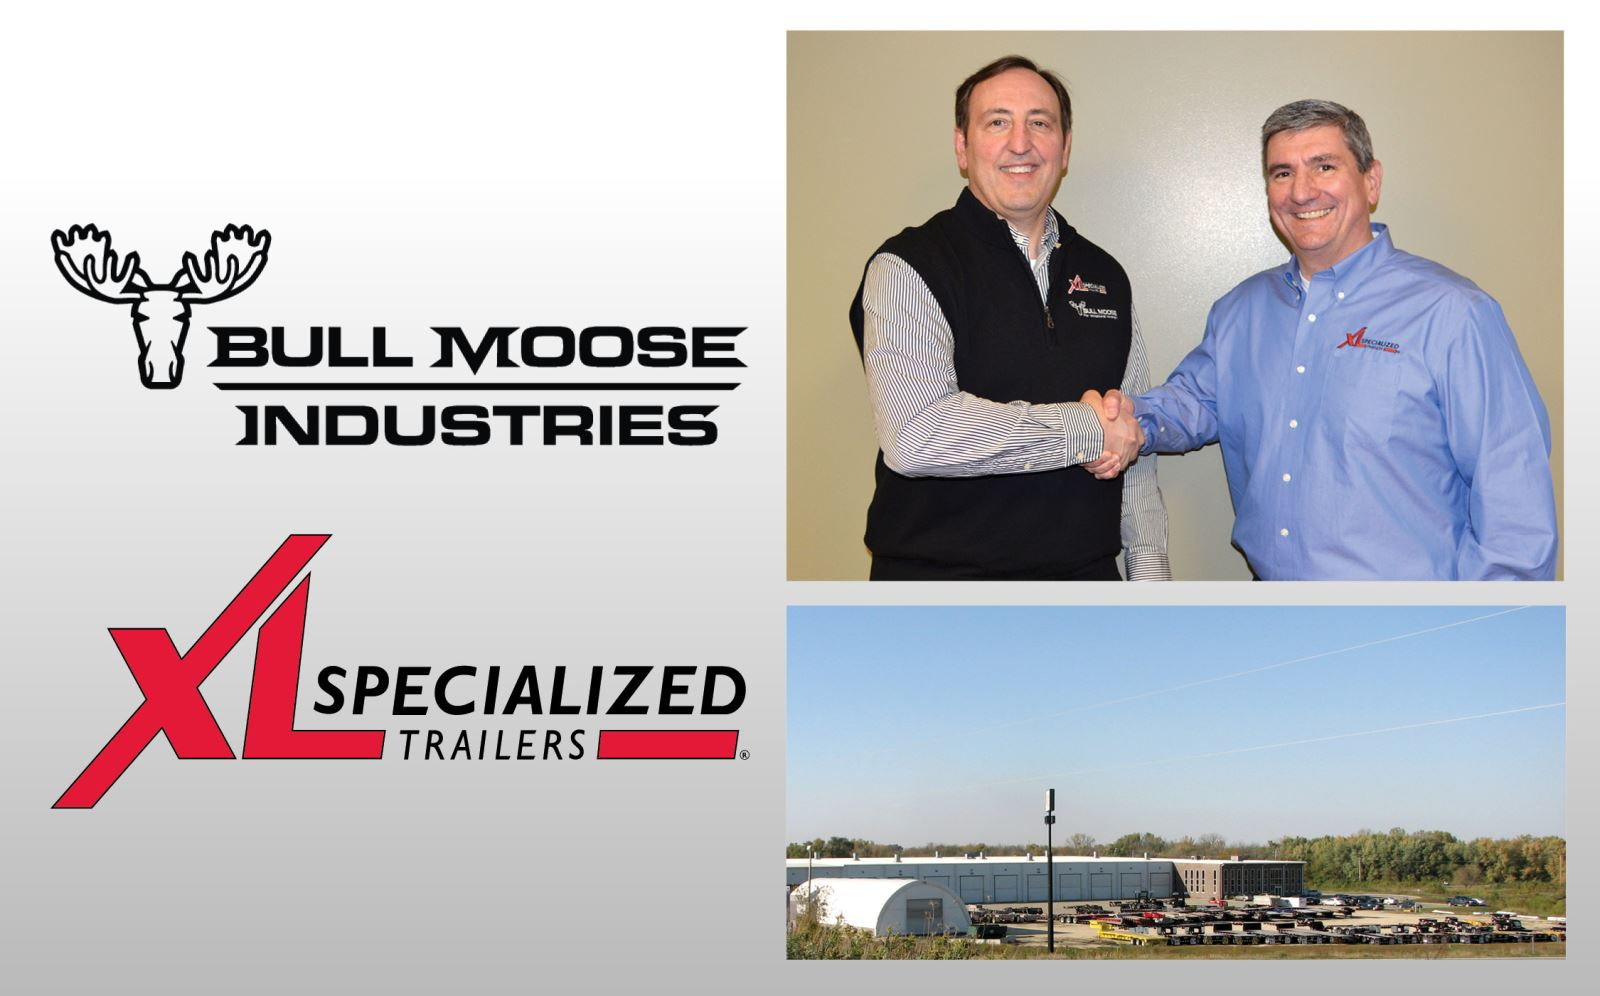 Steve Fairbanks, CEO of XL Specialized Trailers & Michael Blatz, CEO of Bull Moose Industries